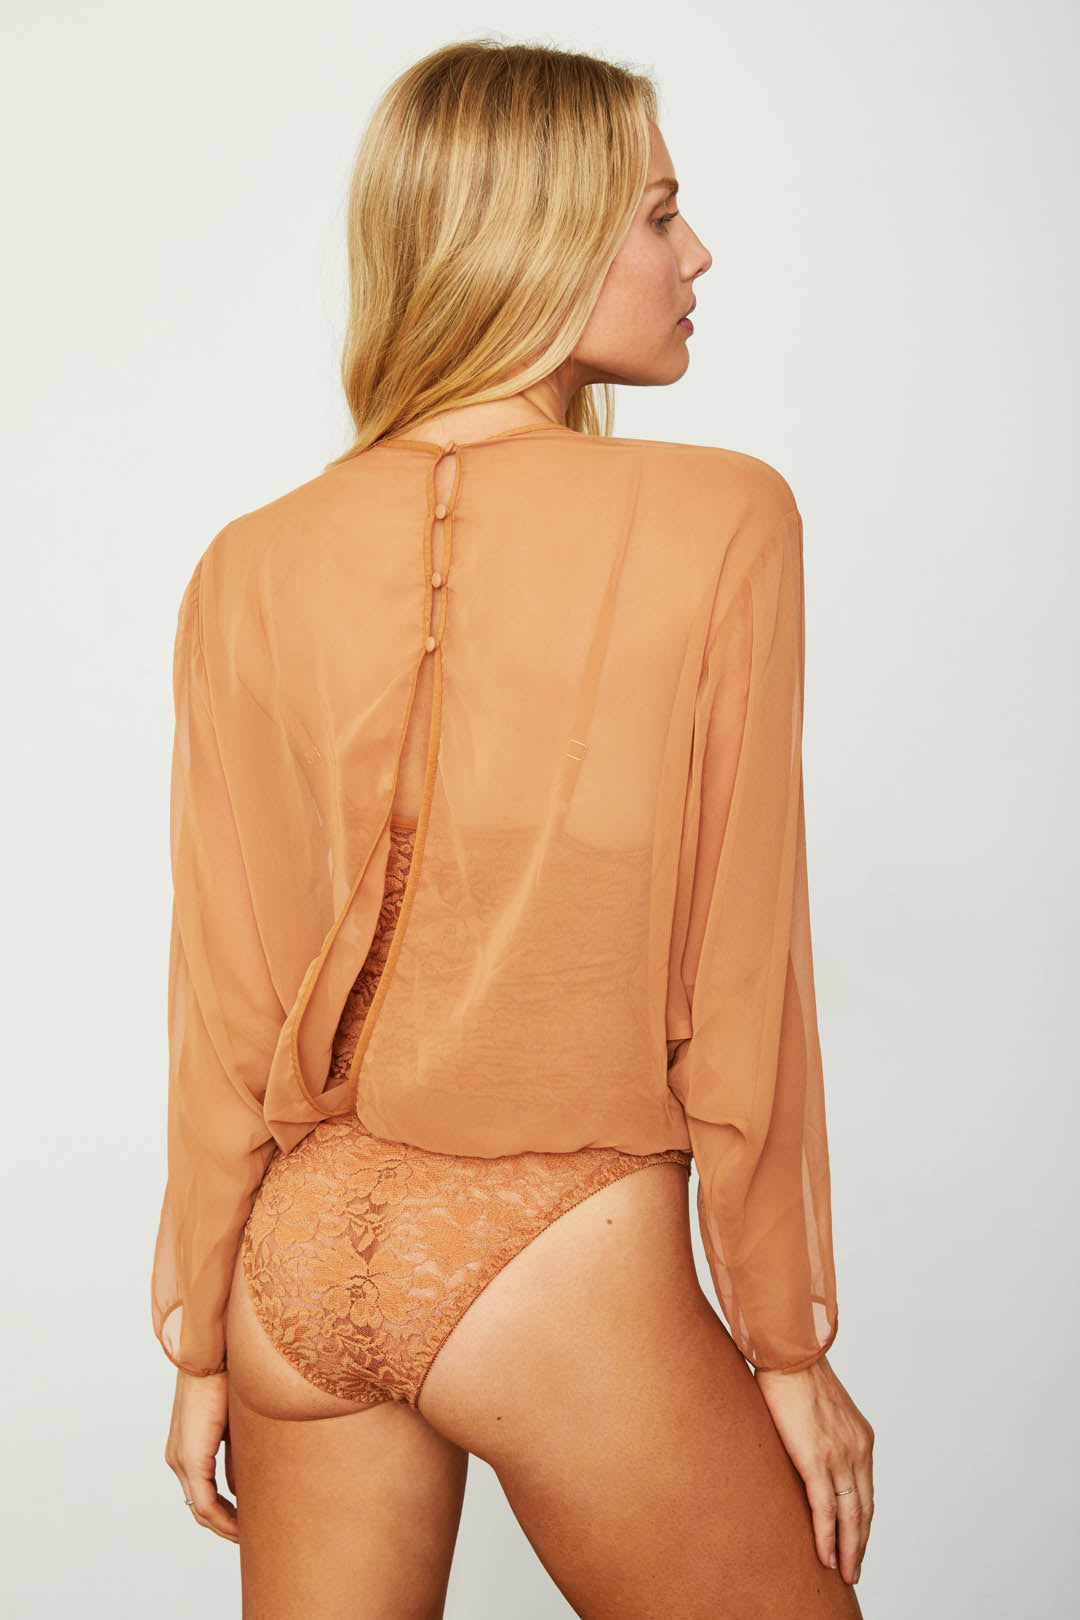 brown chiffon bodysuit blouse with lace underlay machine washable